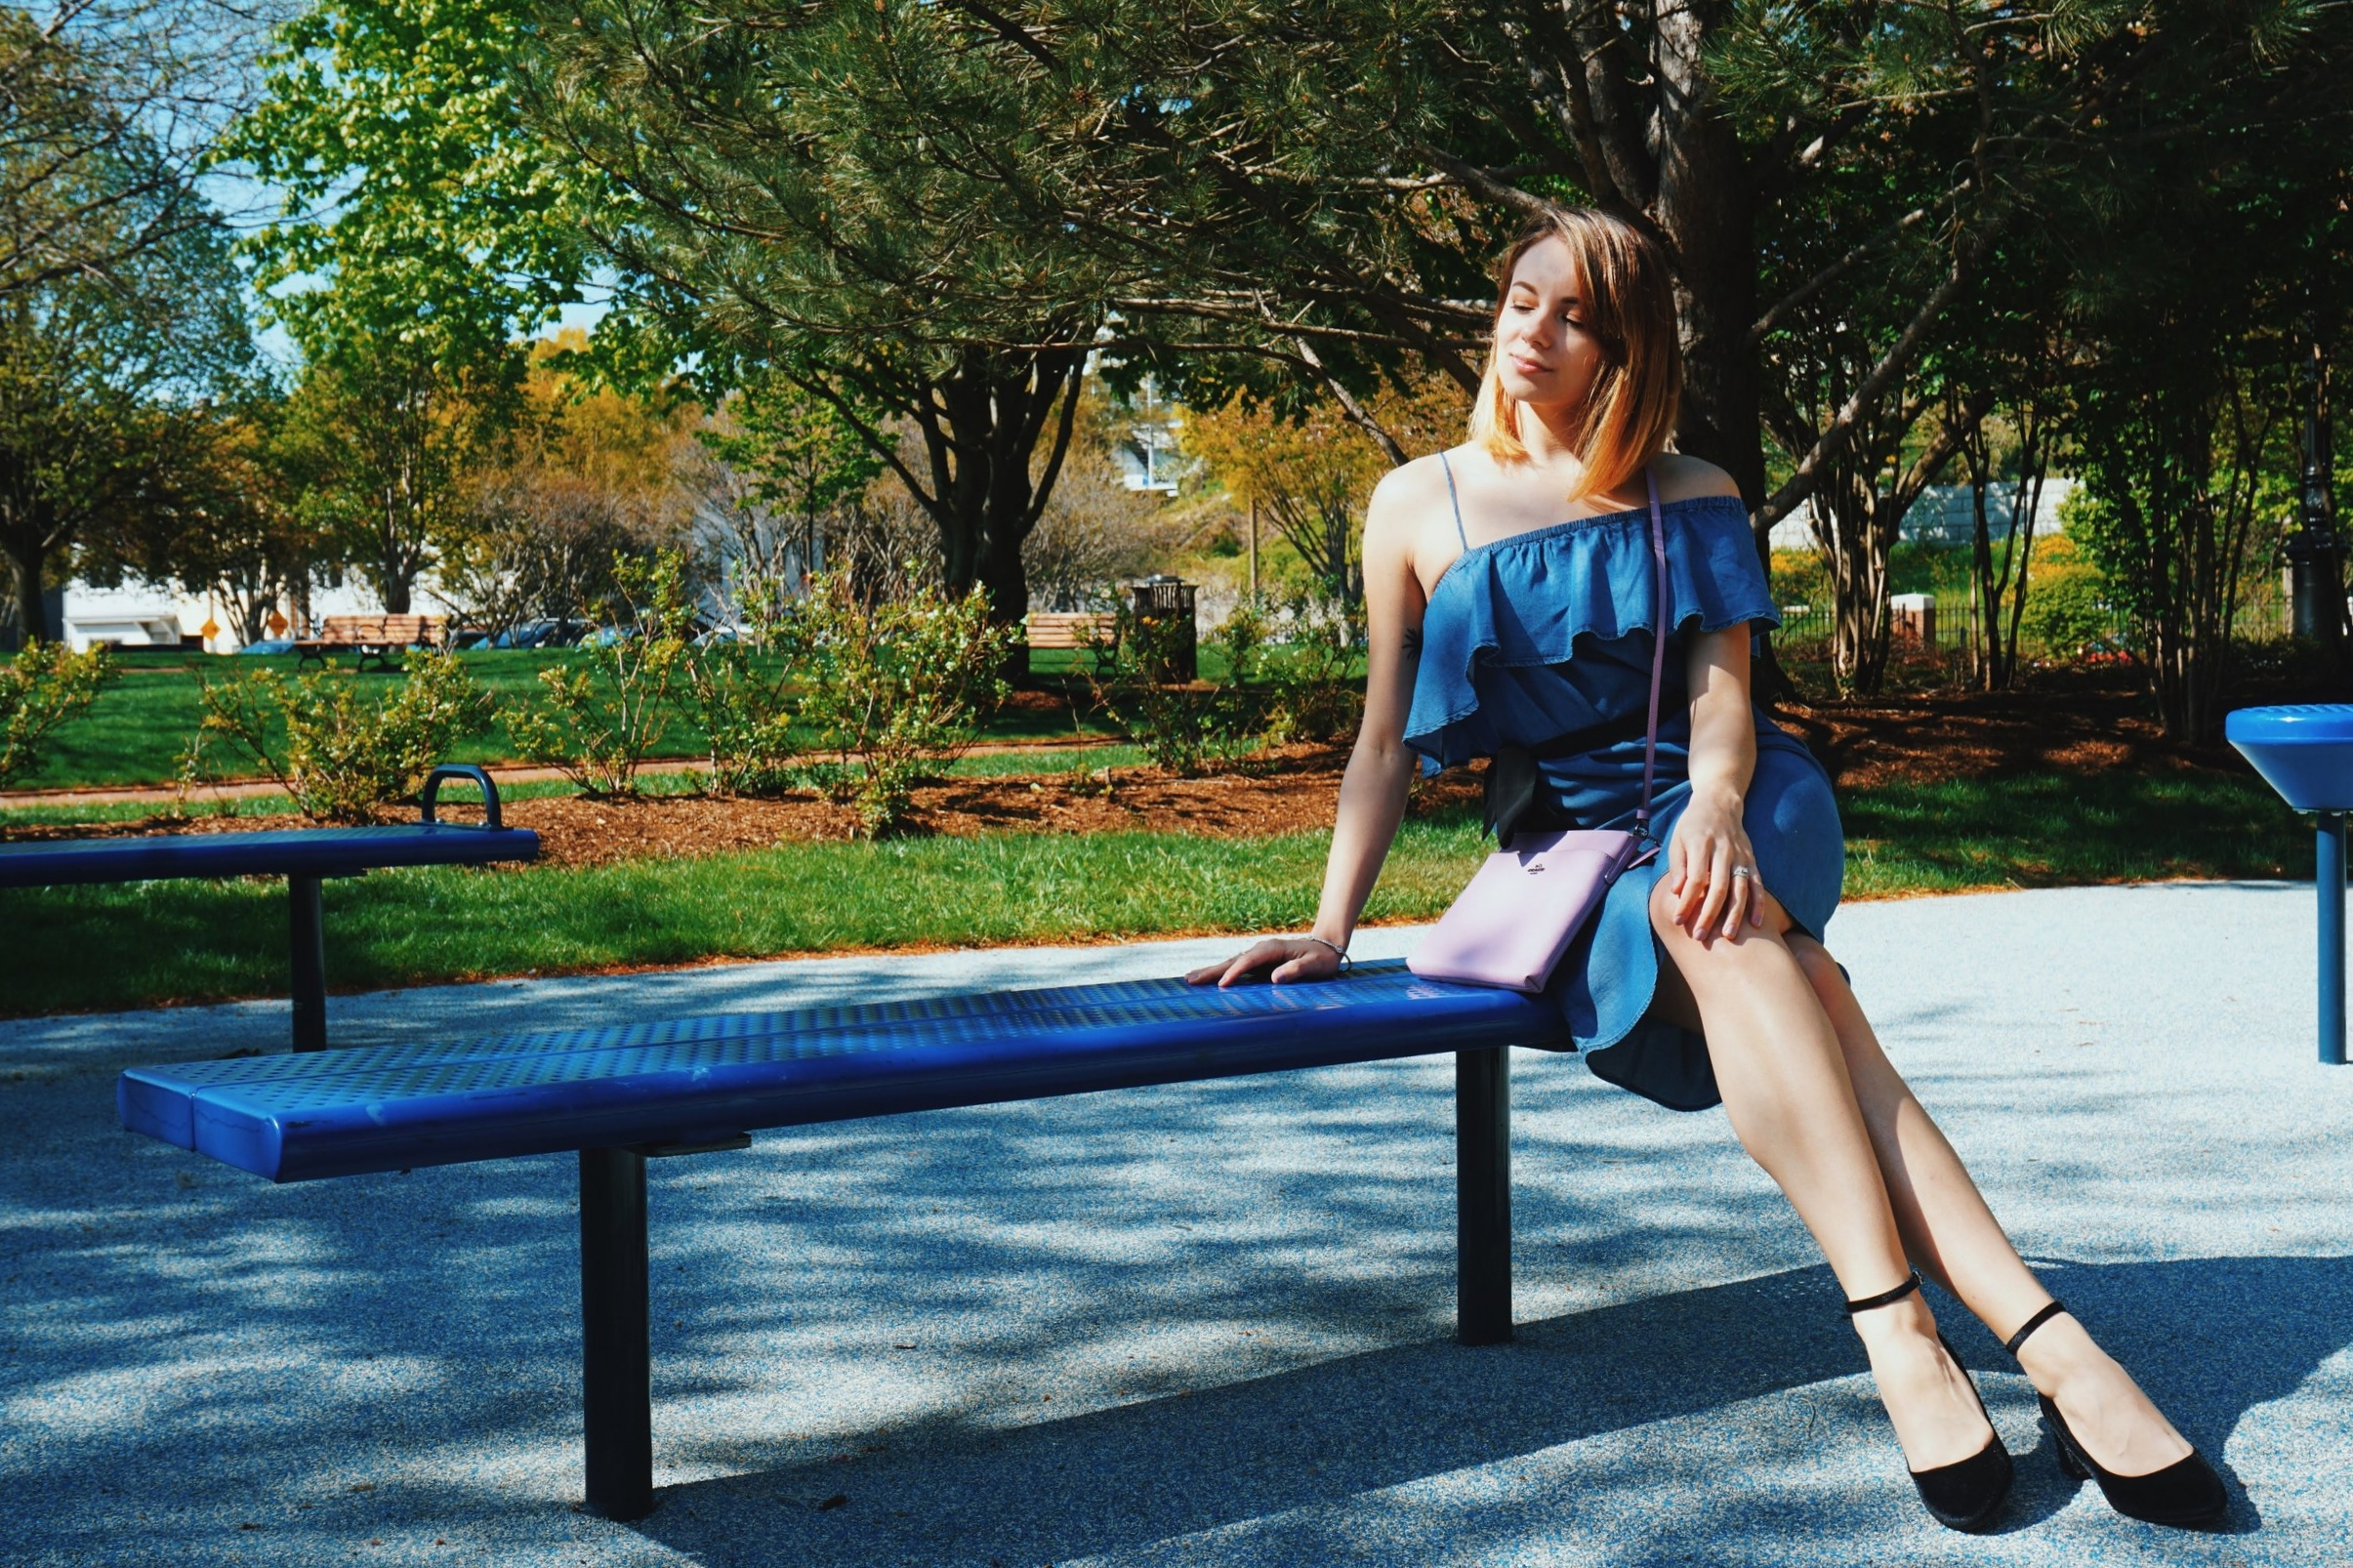 A girl sitting on a bench wearing a cute summer outfit: denim dress, black pumps, and a lilac purse.